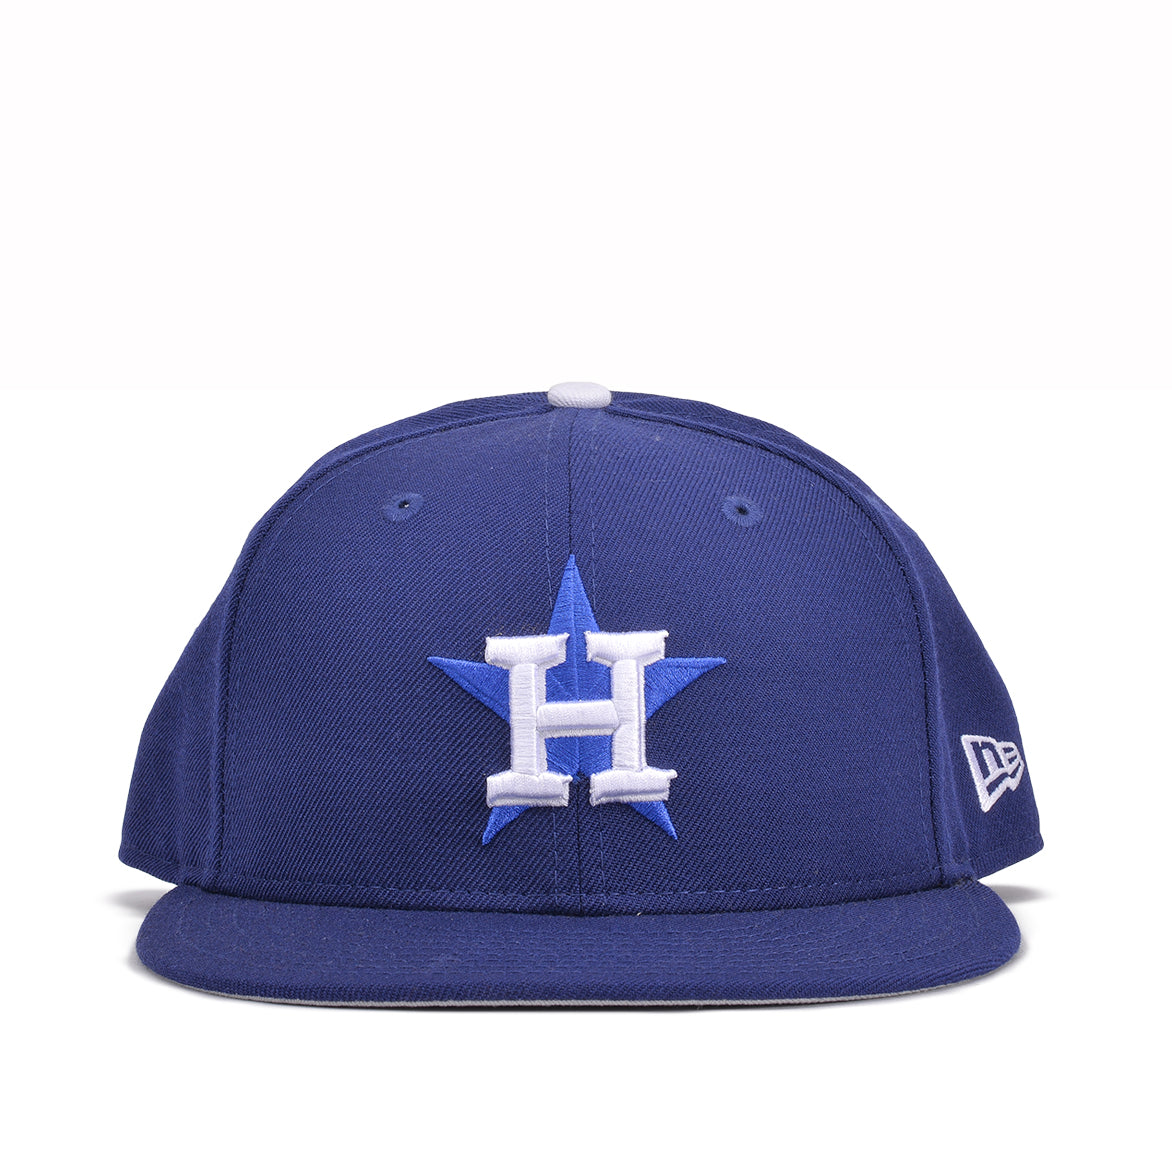 "CITY BLUE x NEW ERA 59FIFTY ""COLOR FLIP"" - ASTROS"